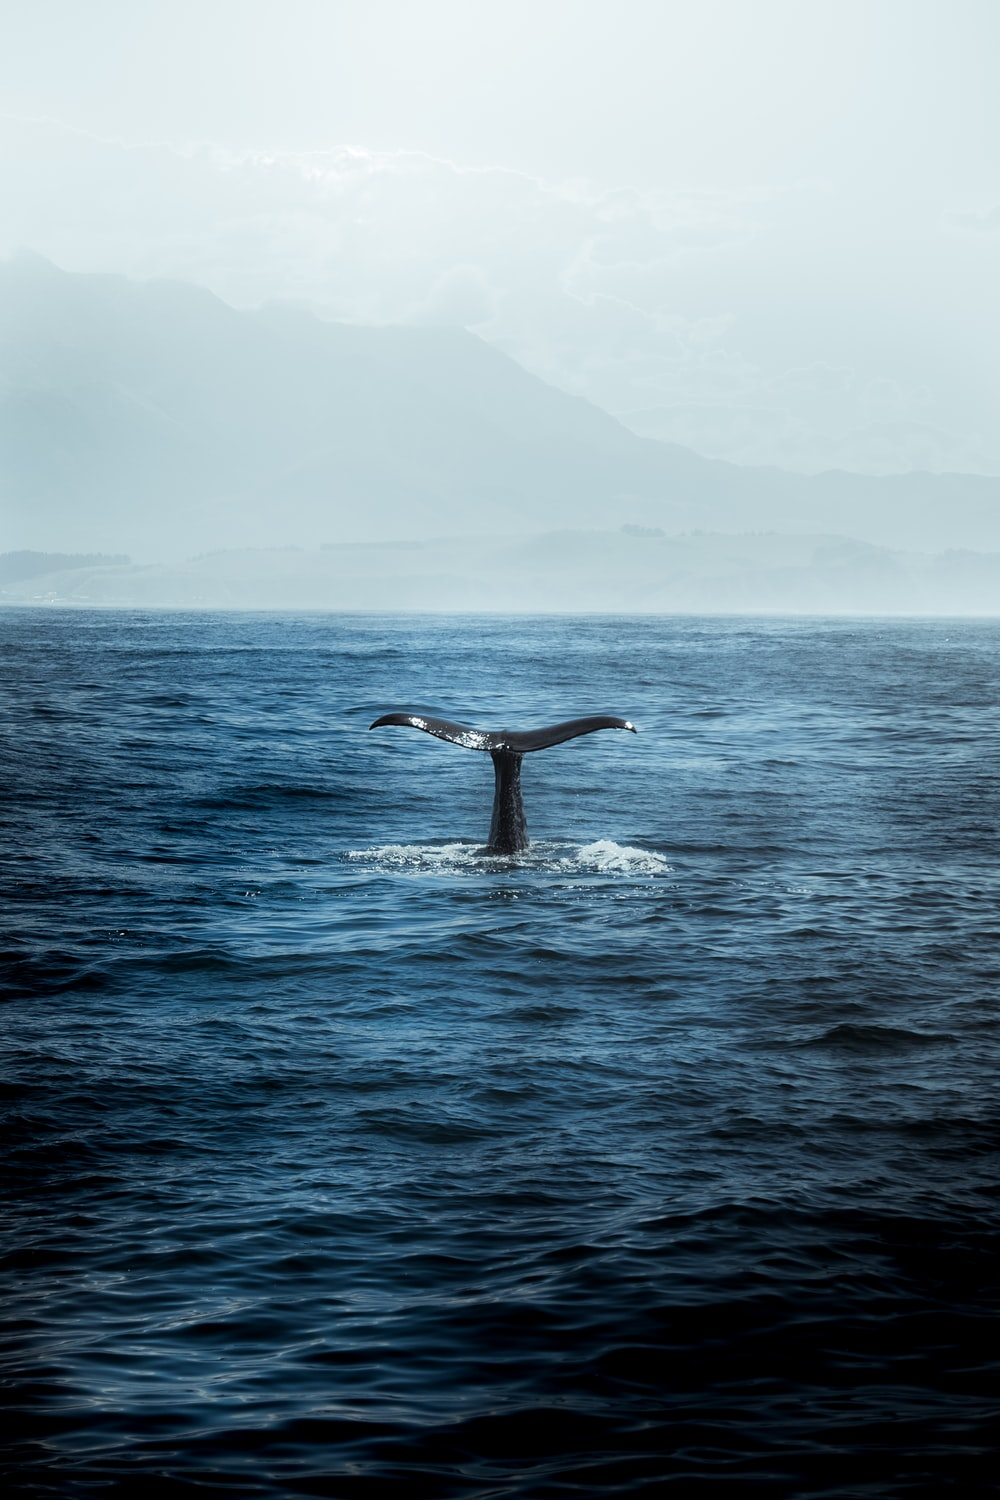 blue whale in body of water